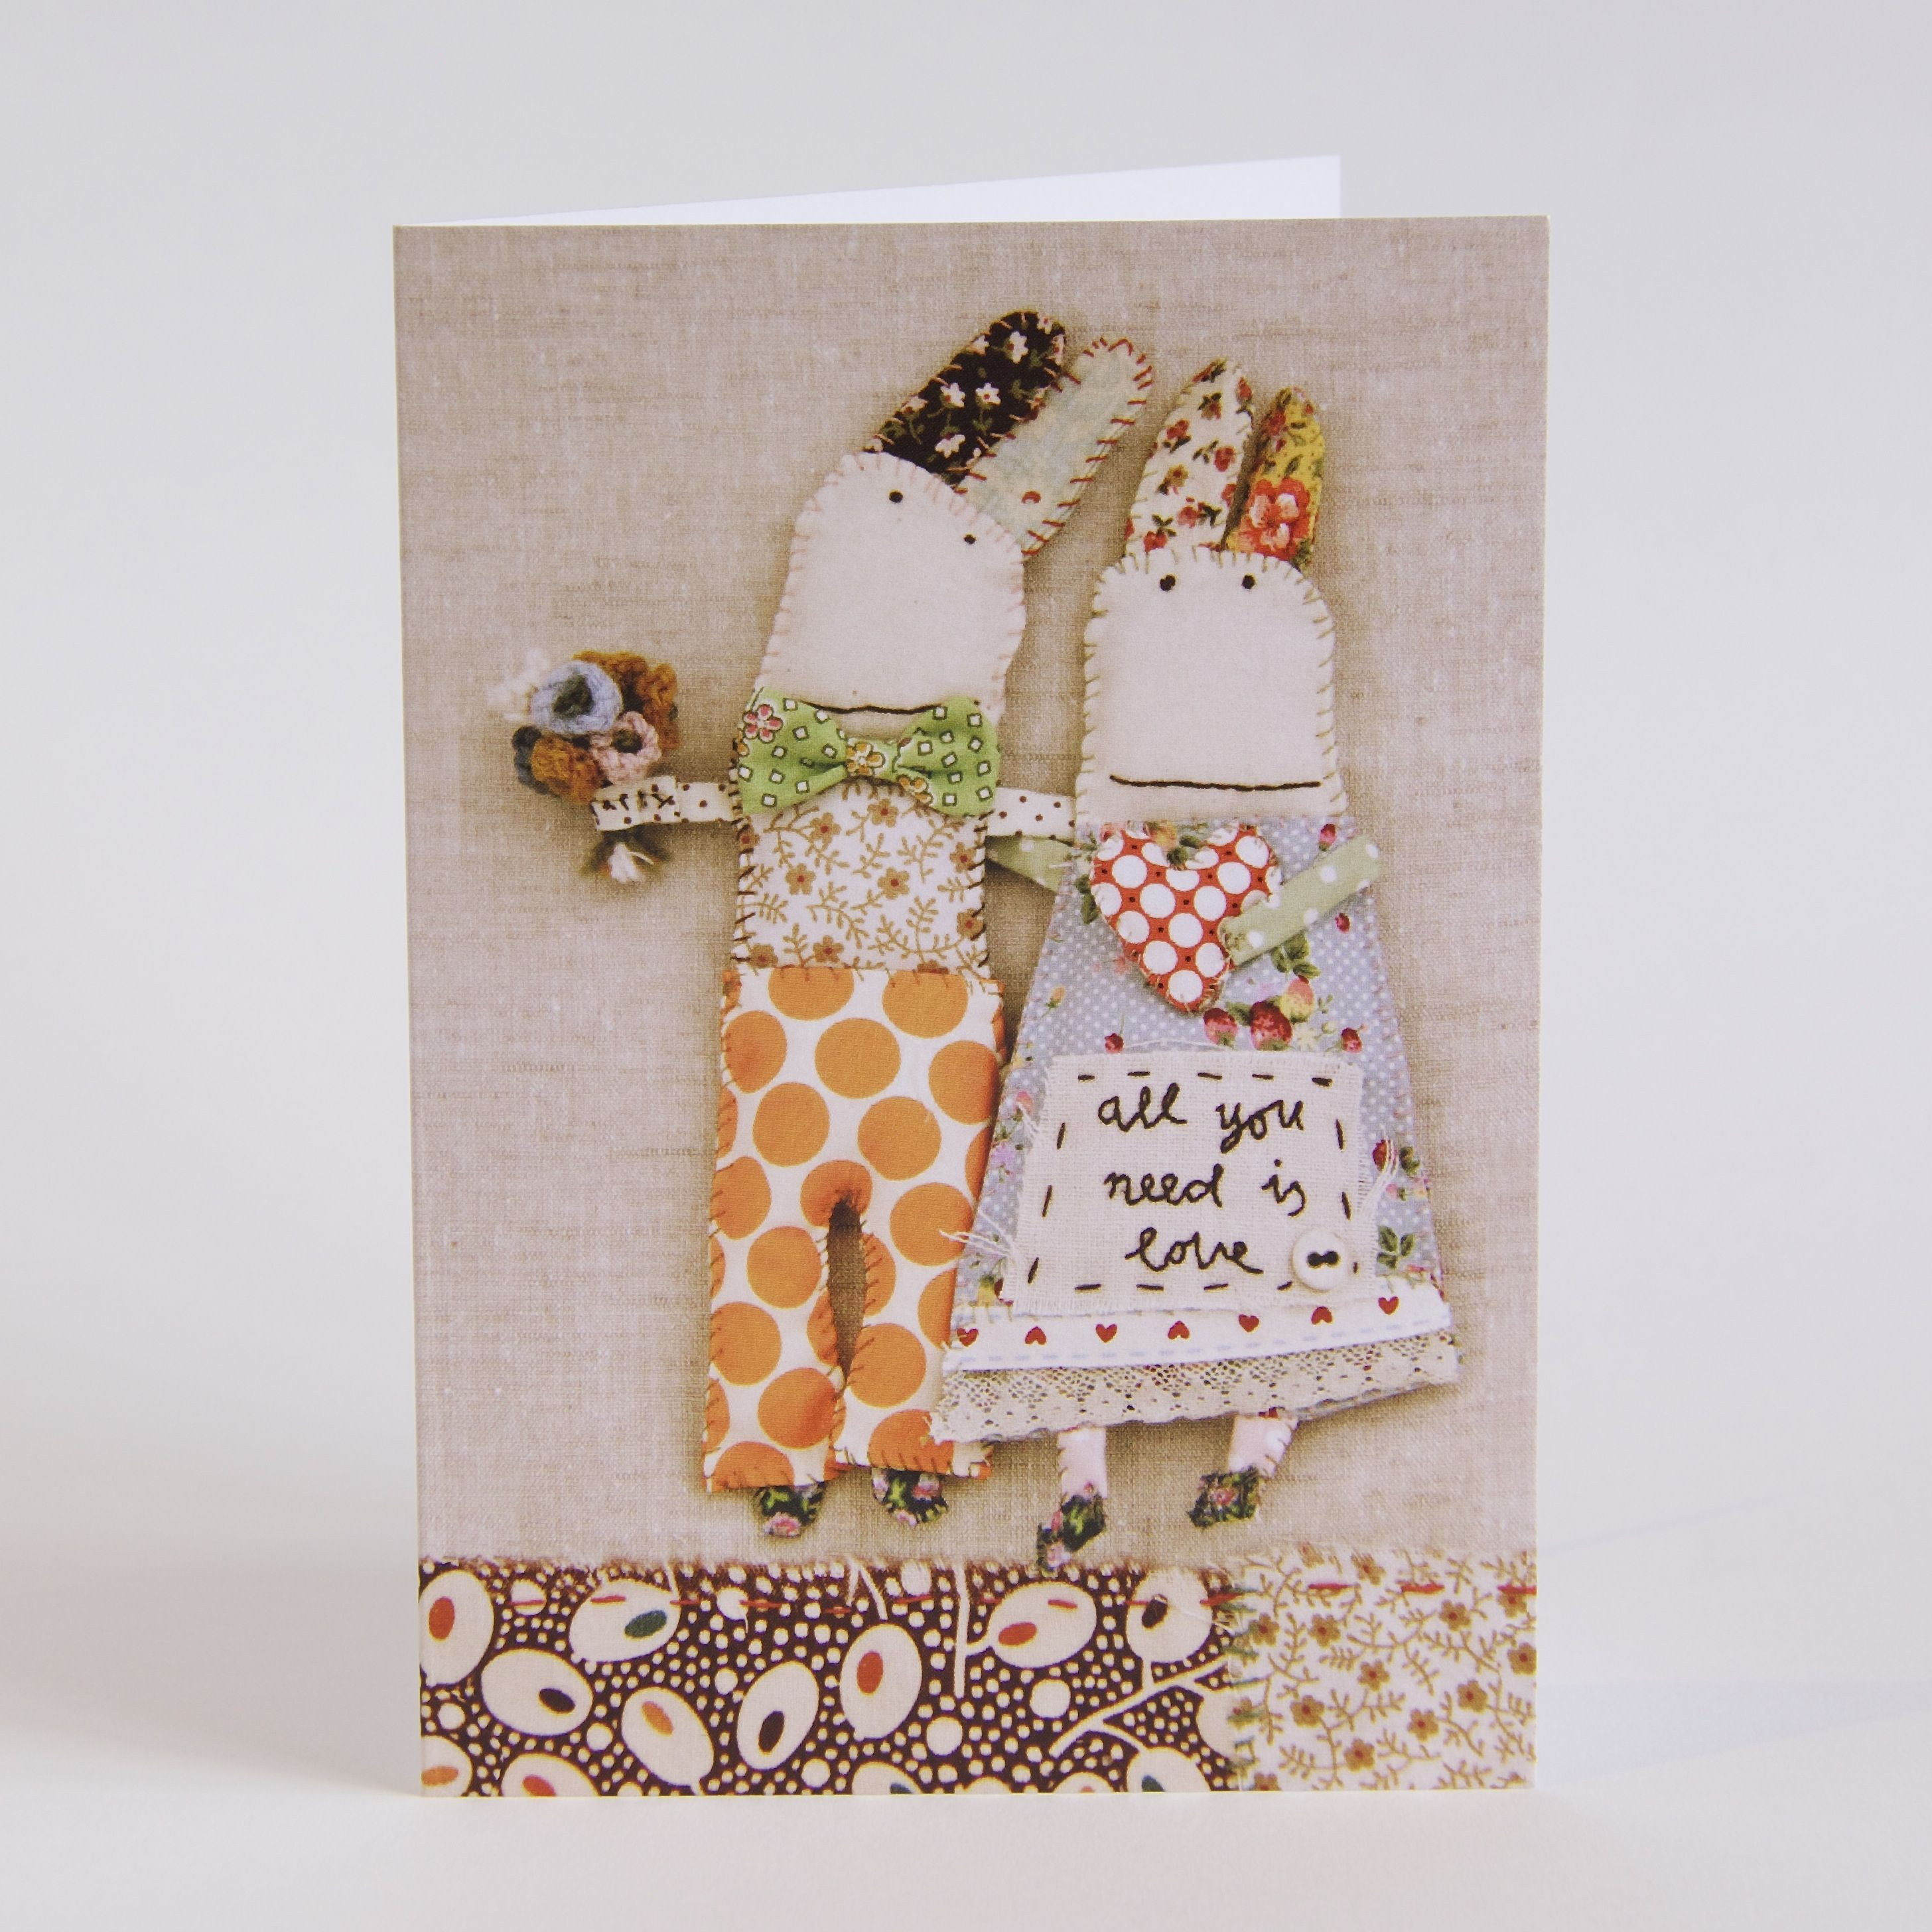 Printed on a high quality, textured card with a vanilla envelope.Blank inside for your own message.12cm x 17cmP